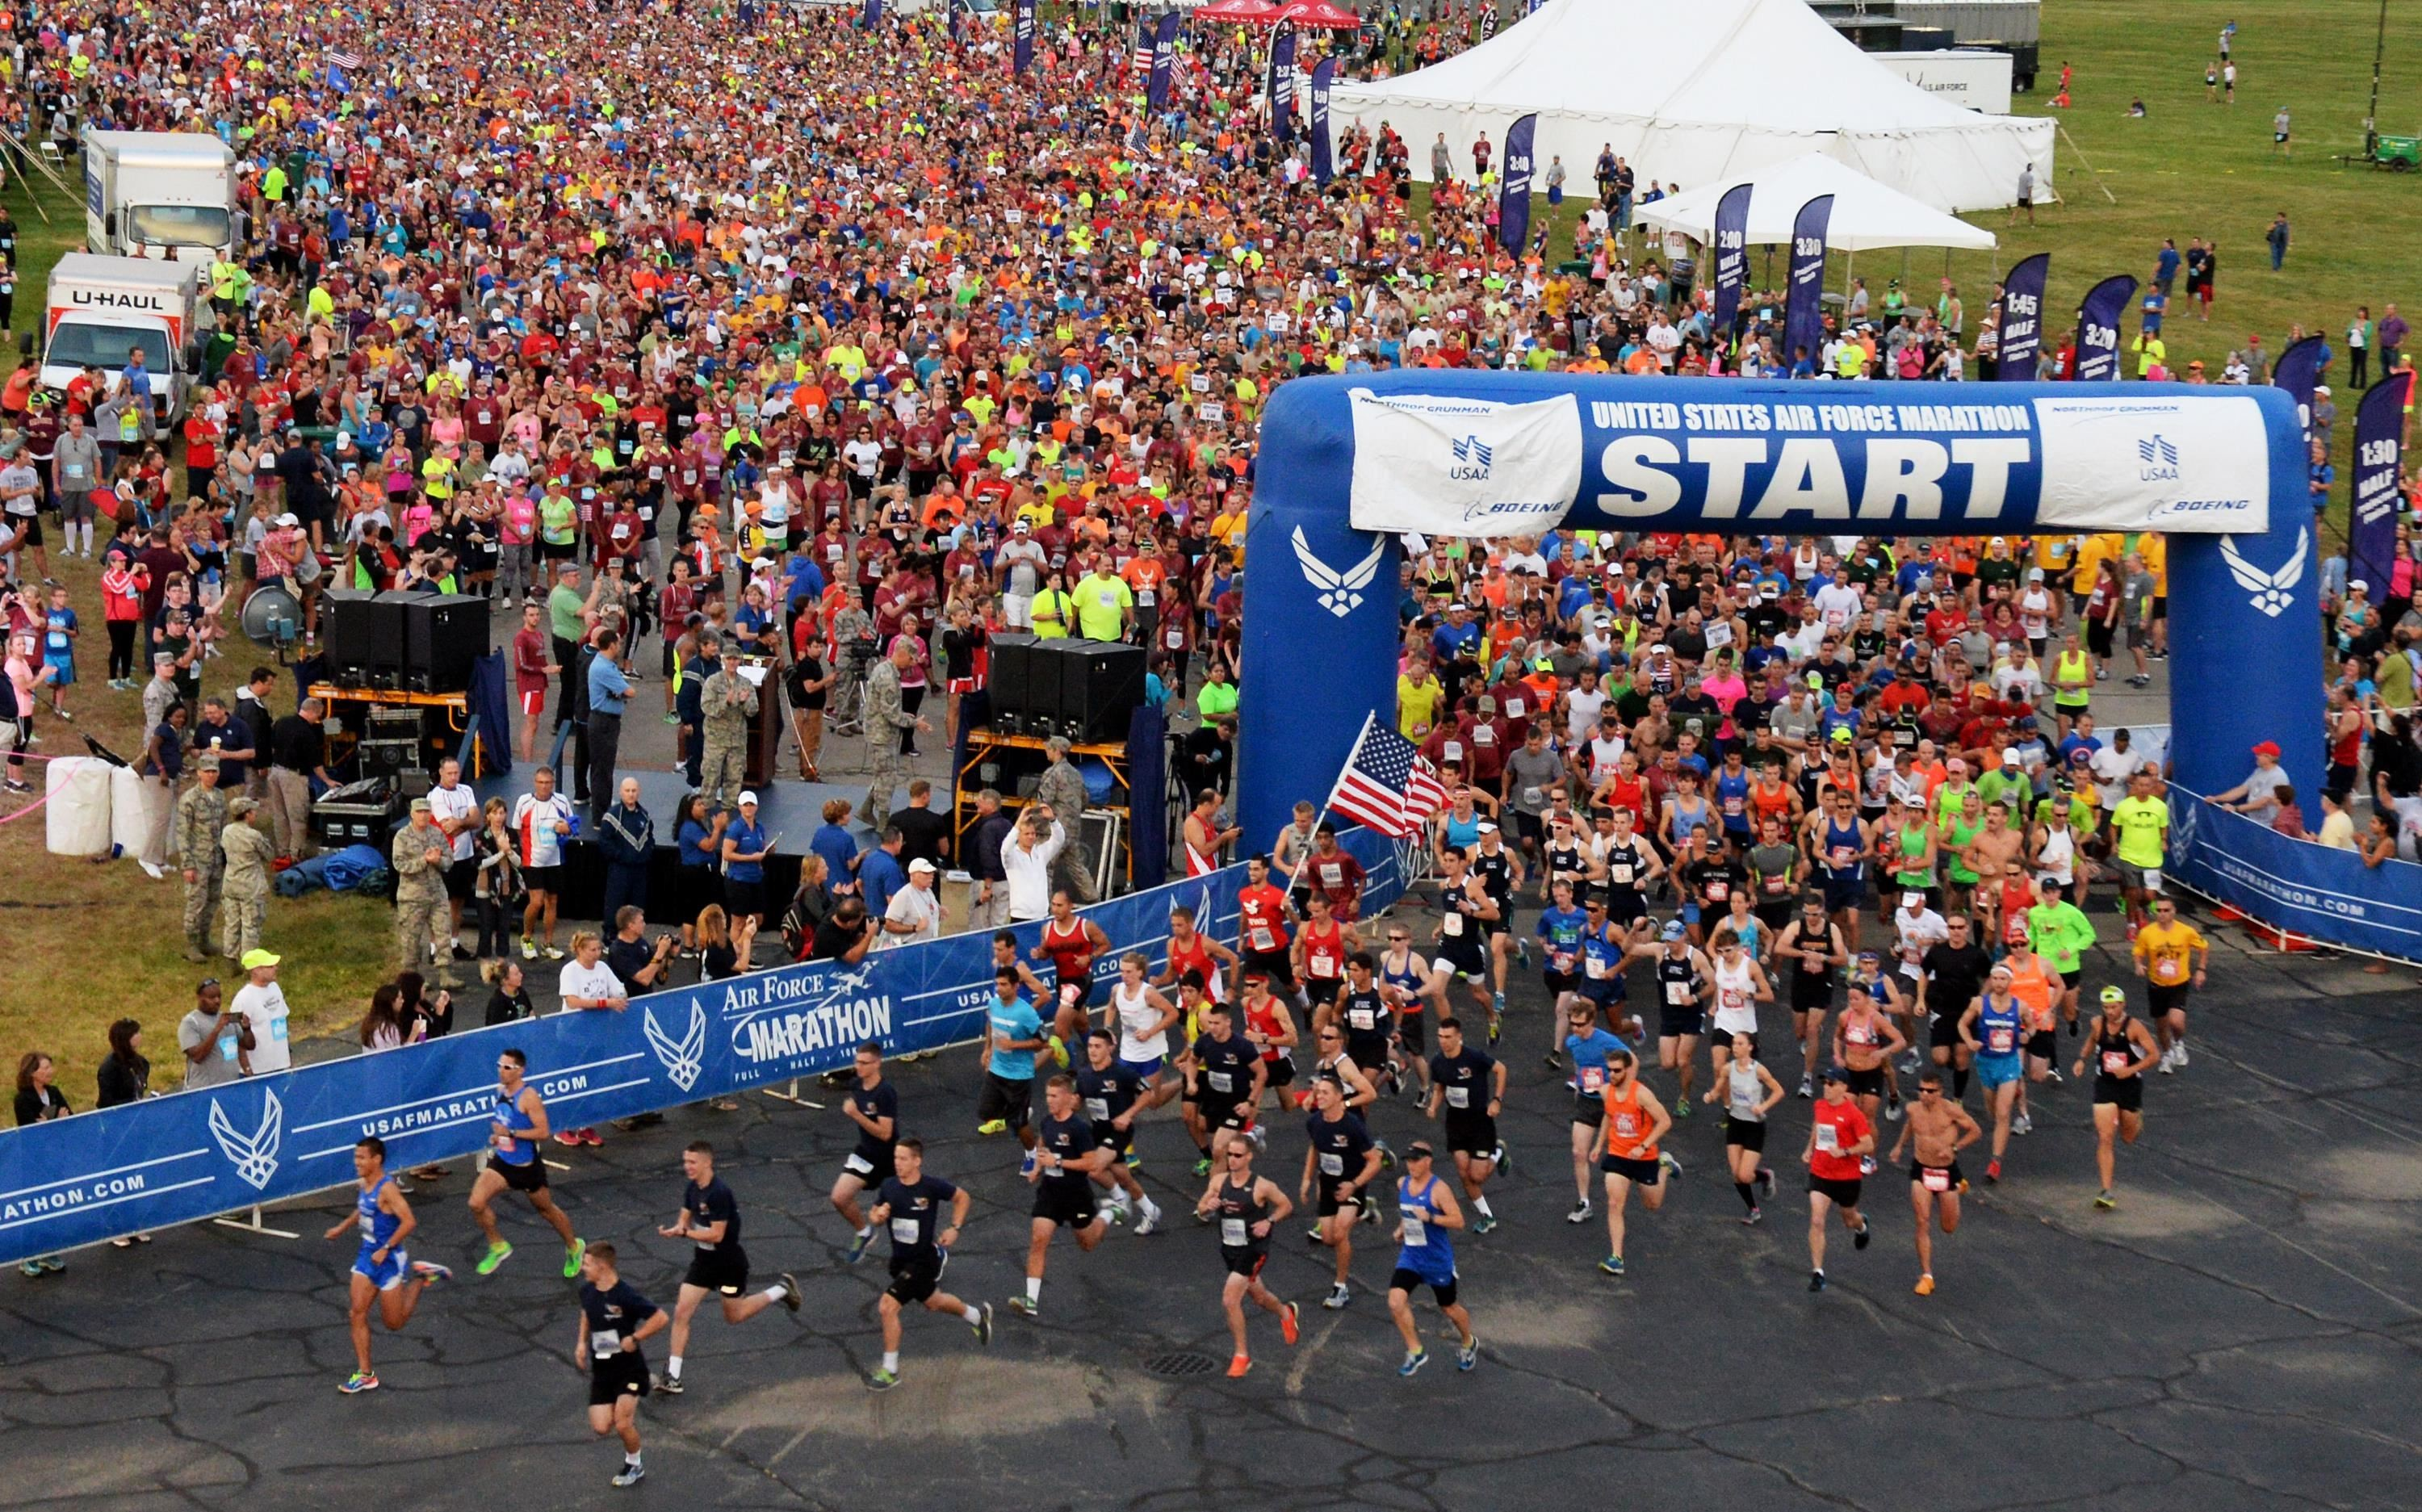 The Air Force Marathon has been cancelled due to the pandemic, race will be held virtually